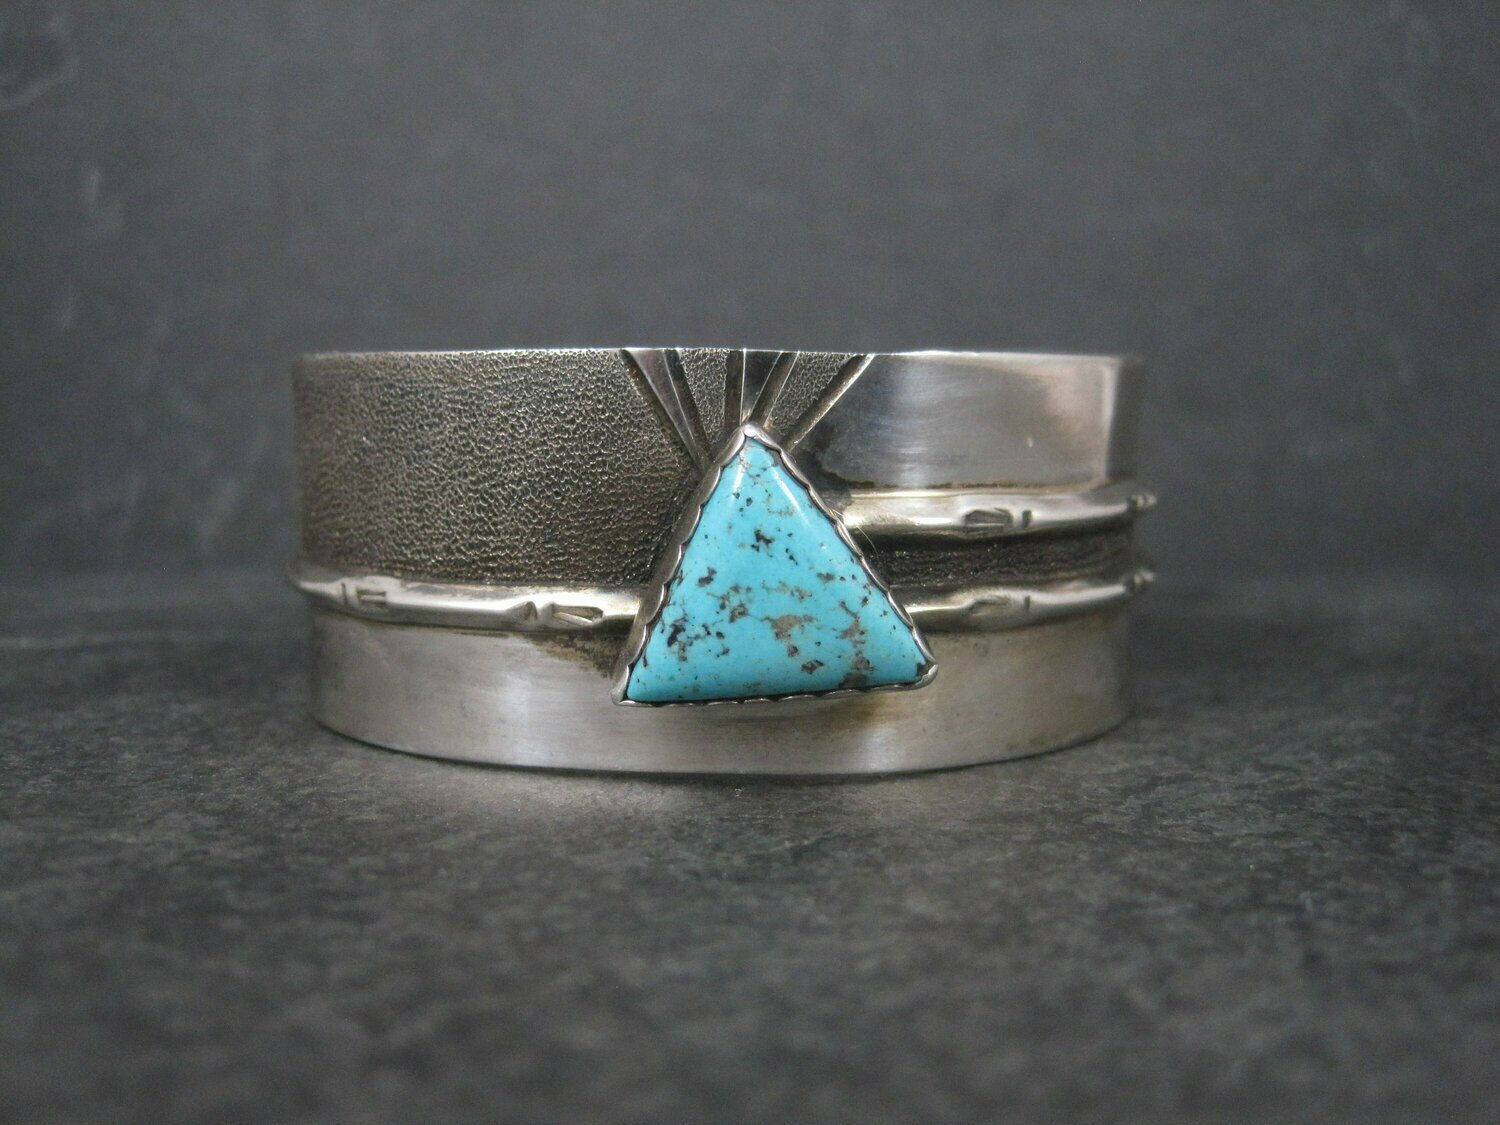 Vintage Sterling Navajo Turquoise Cuff Bracelet 6.5 Inches Rose Swett